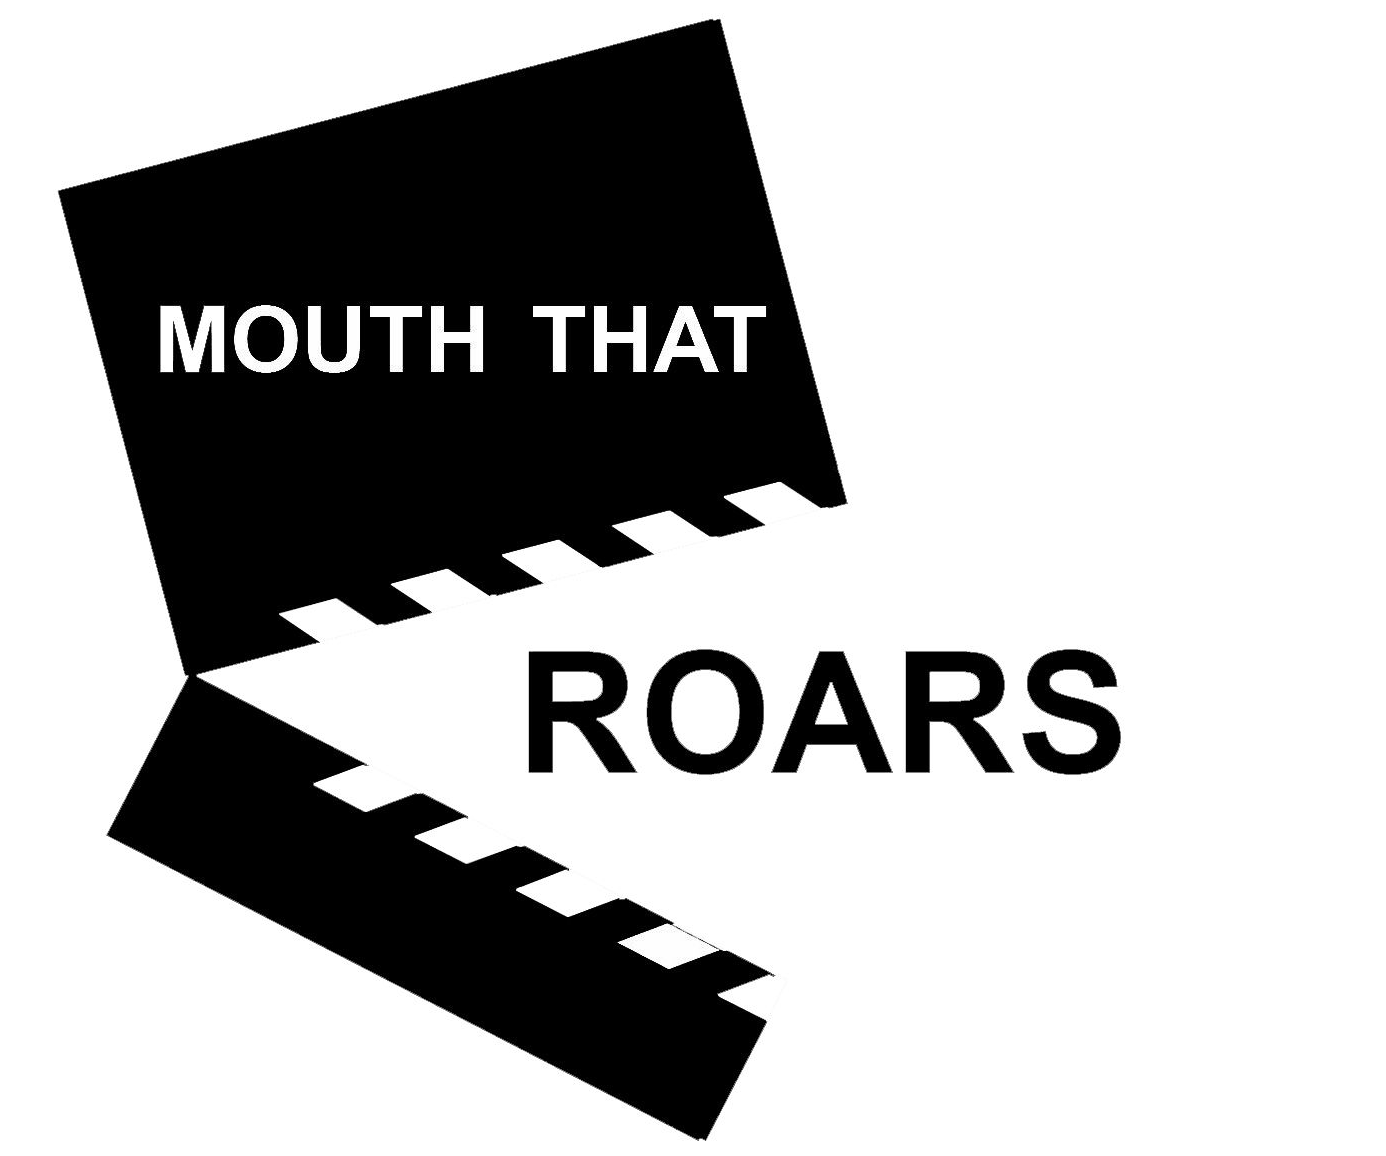 Mouth That Roars logo